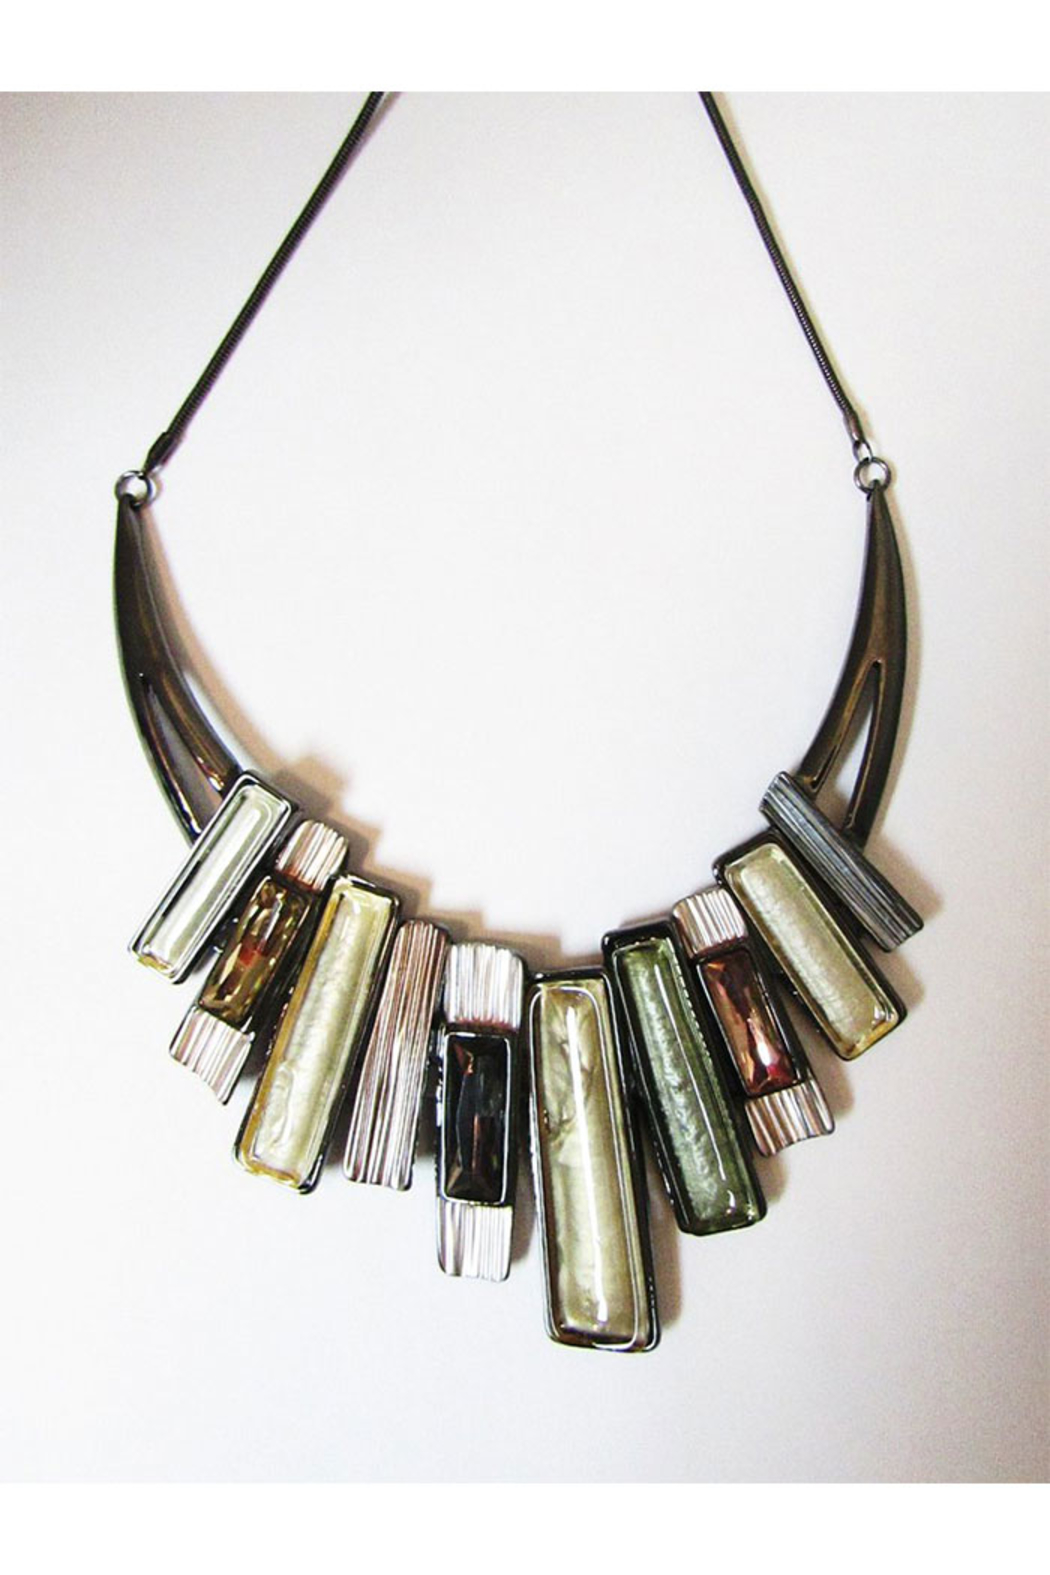 KIMBALS Metal Necklace Set Linked Rectangles In Silver/Olive Tones - Main Image